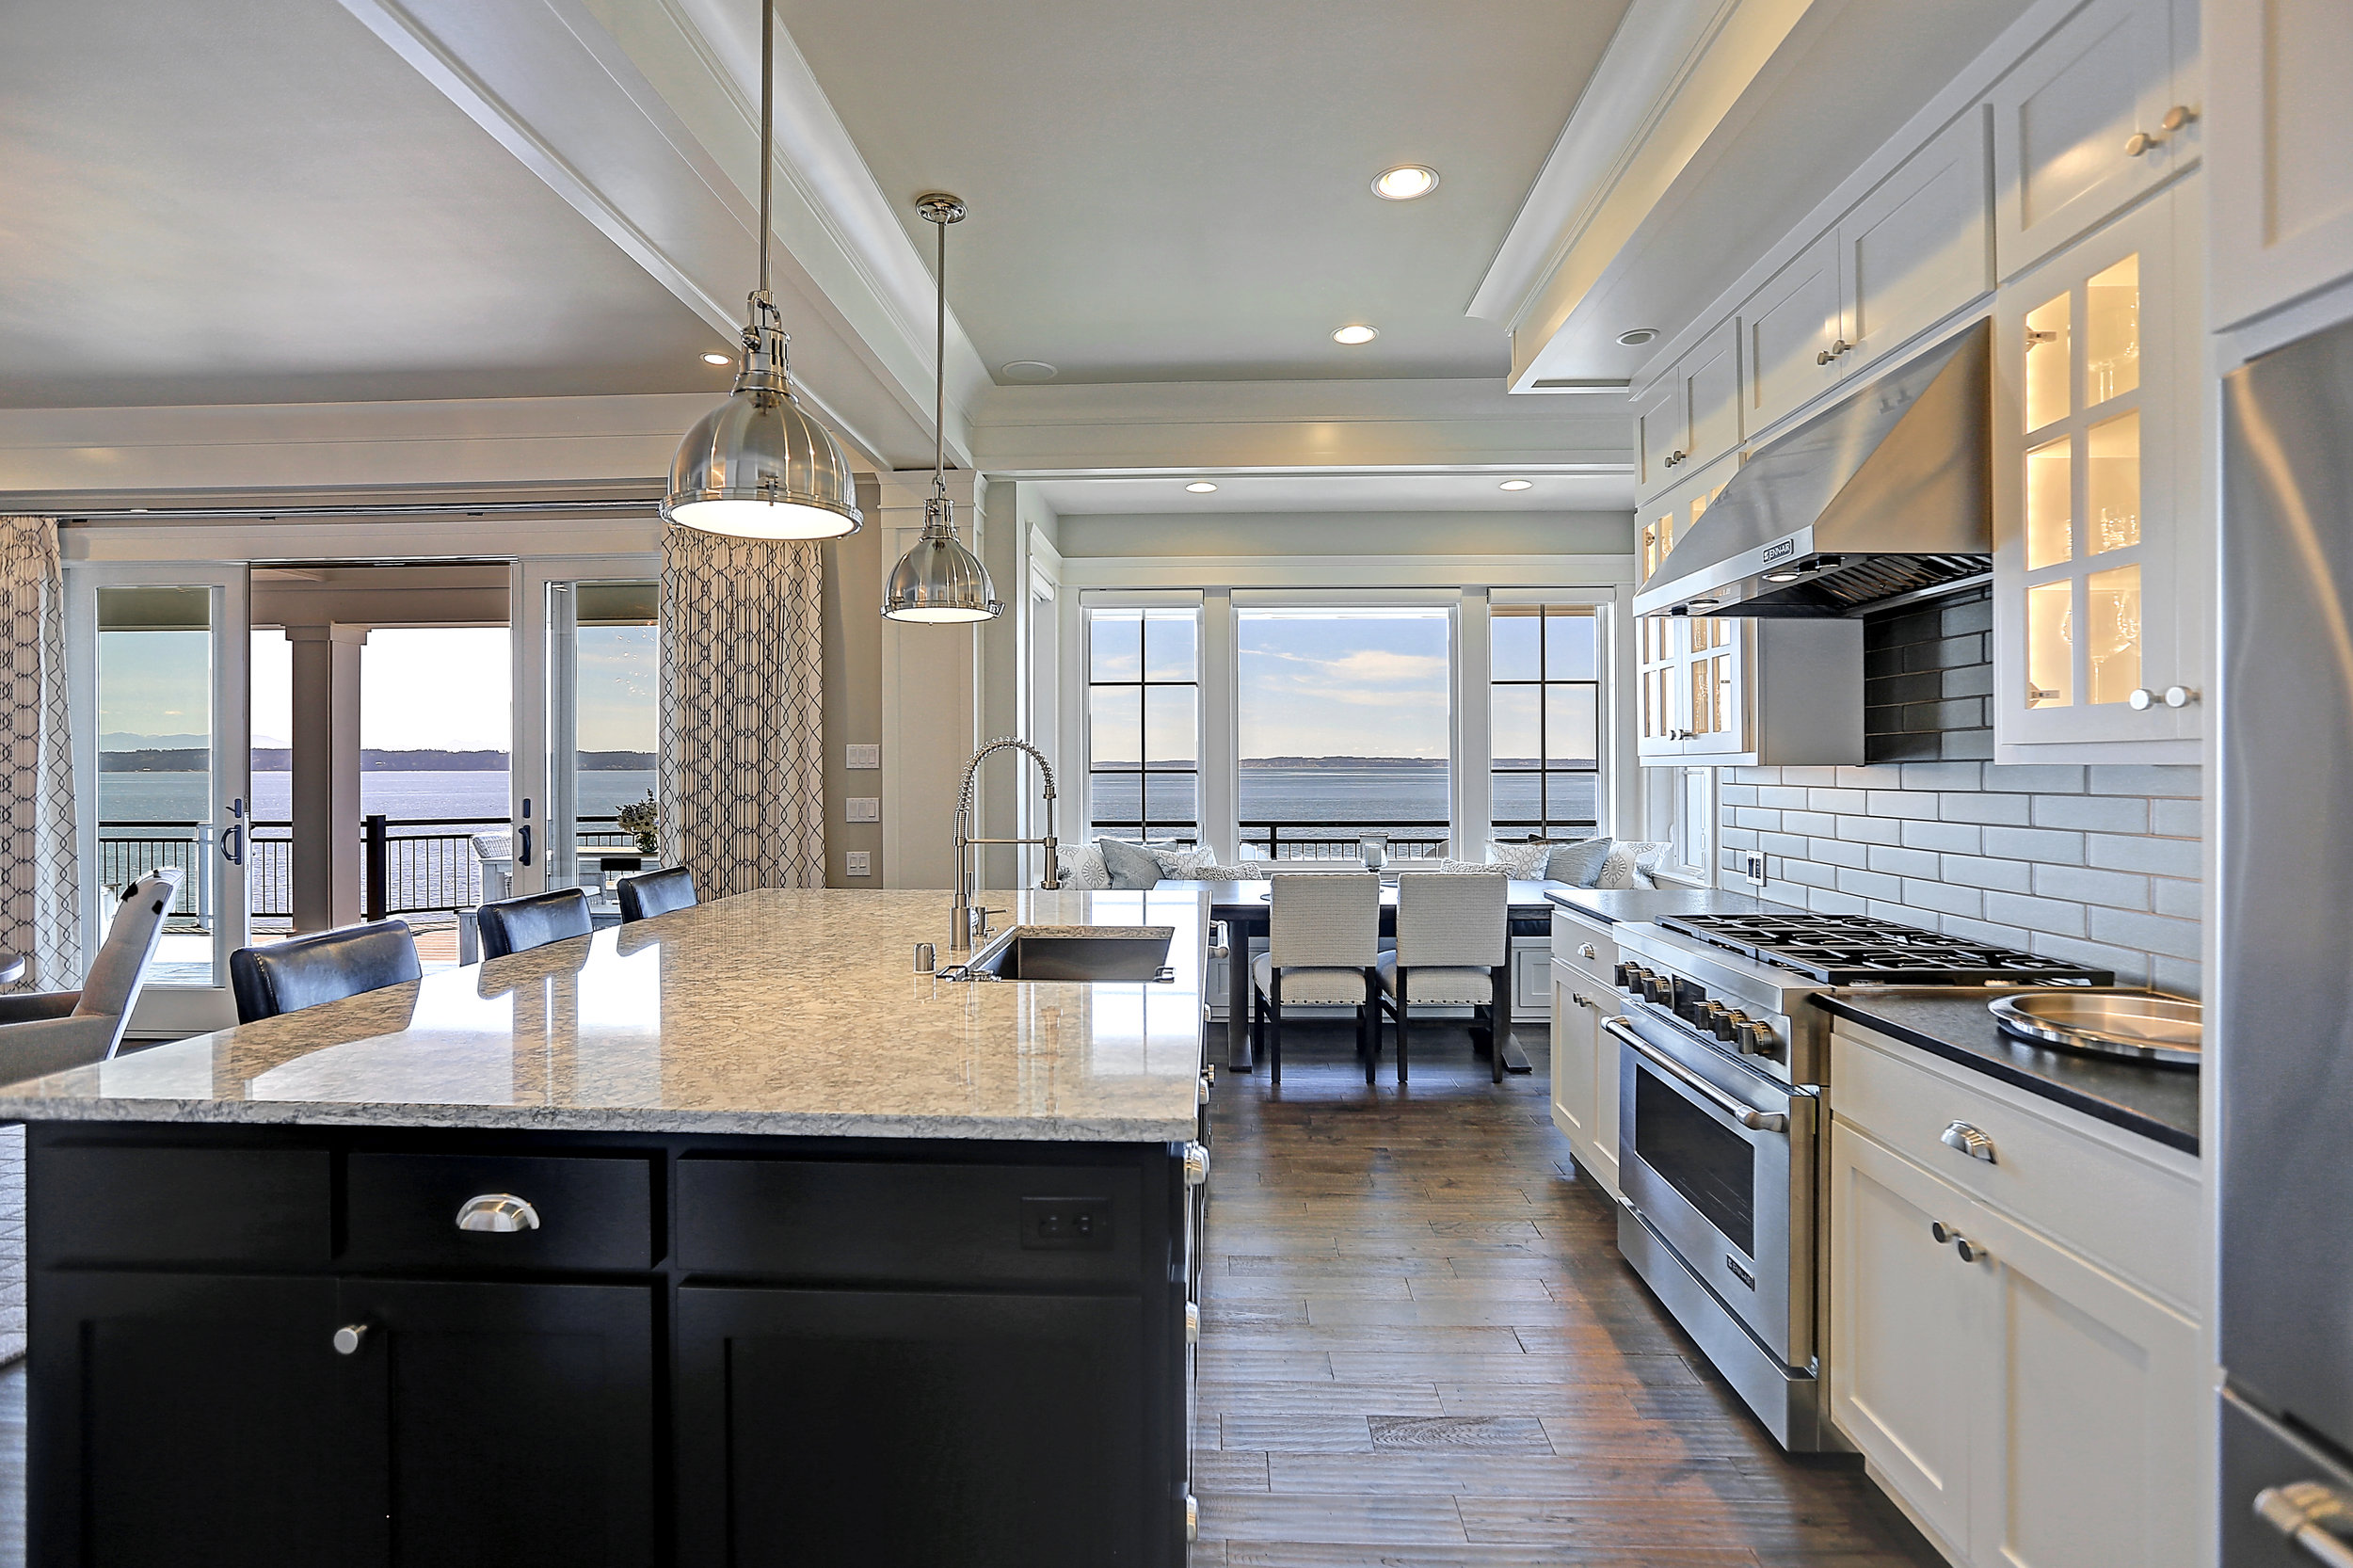 6 httpwww.houzz.comideabooks70991967listhouzz-tour-island-home-works-with-the-forces-of-nature.jpg